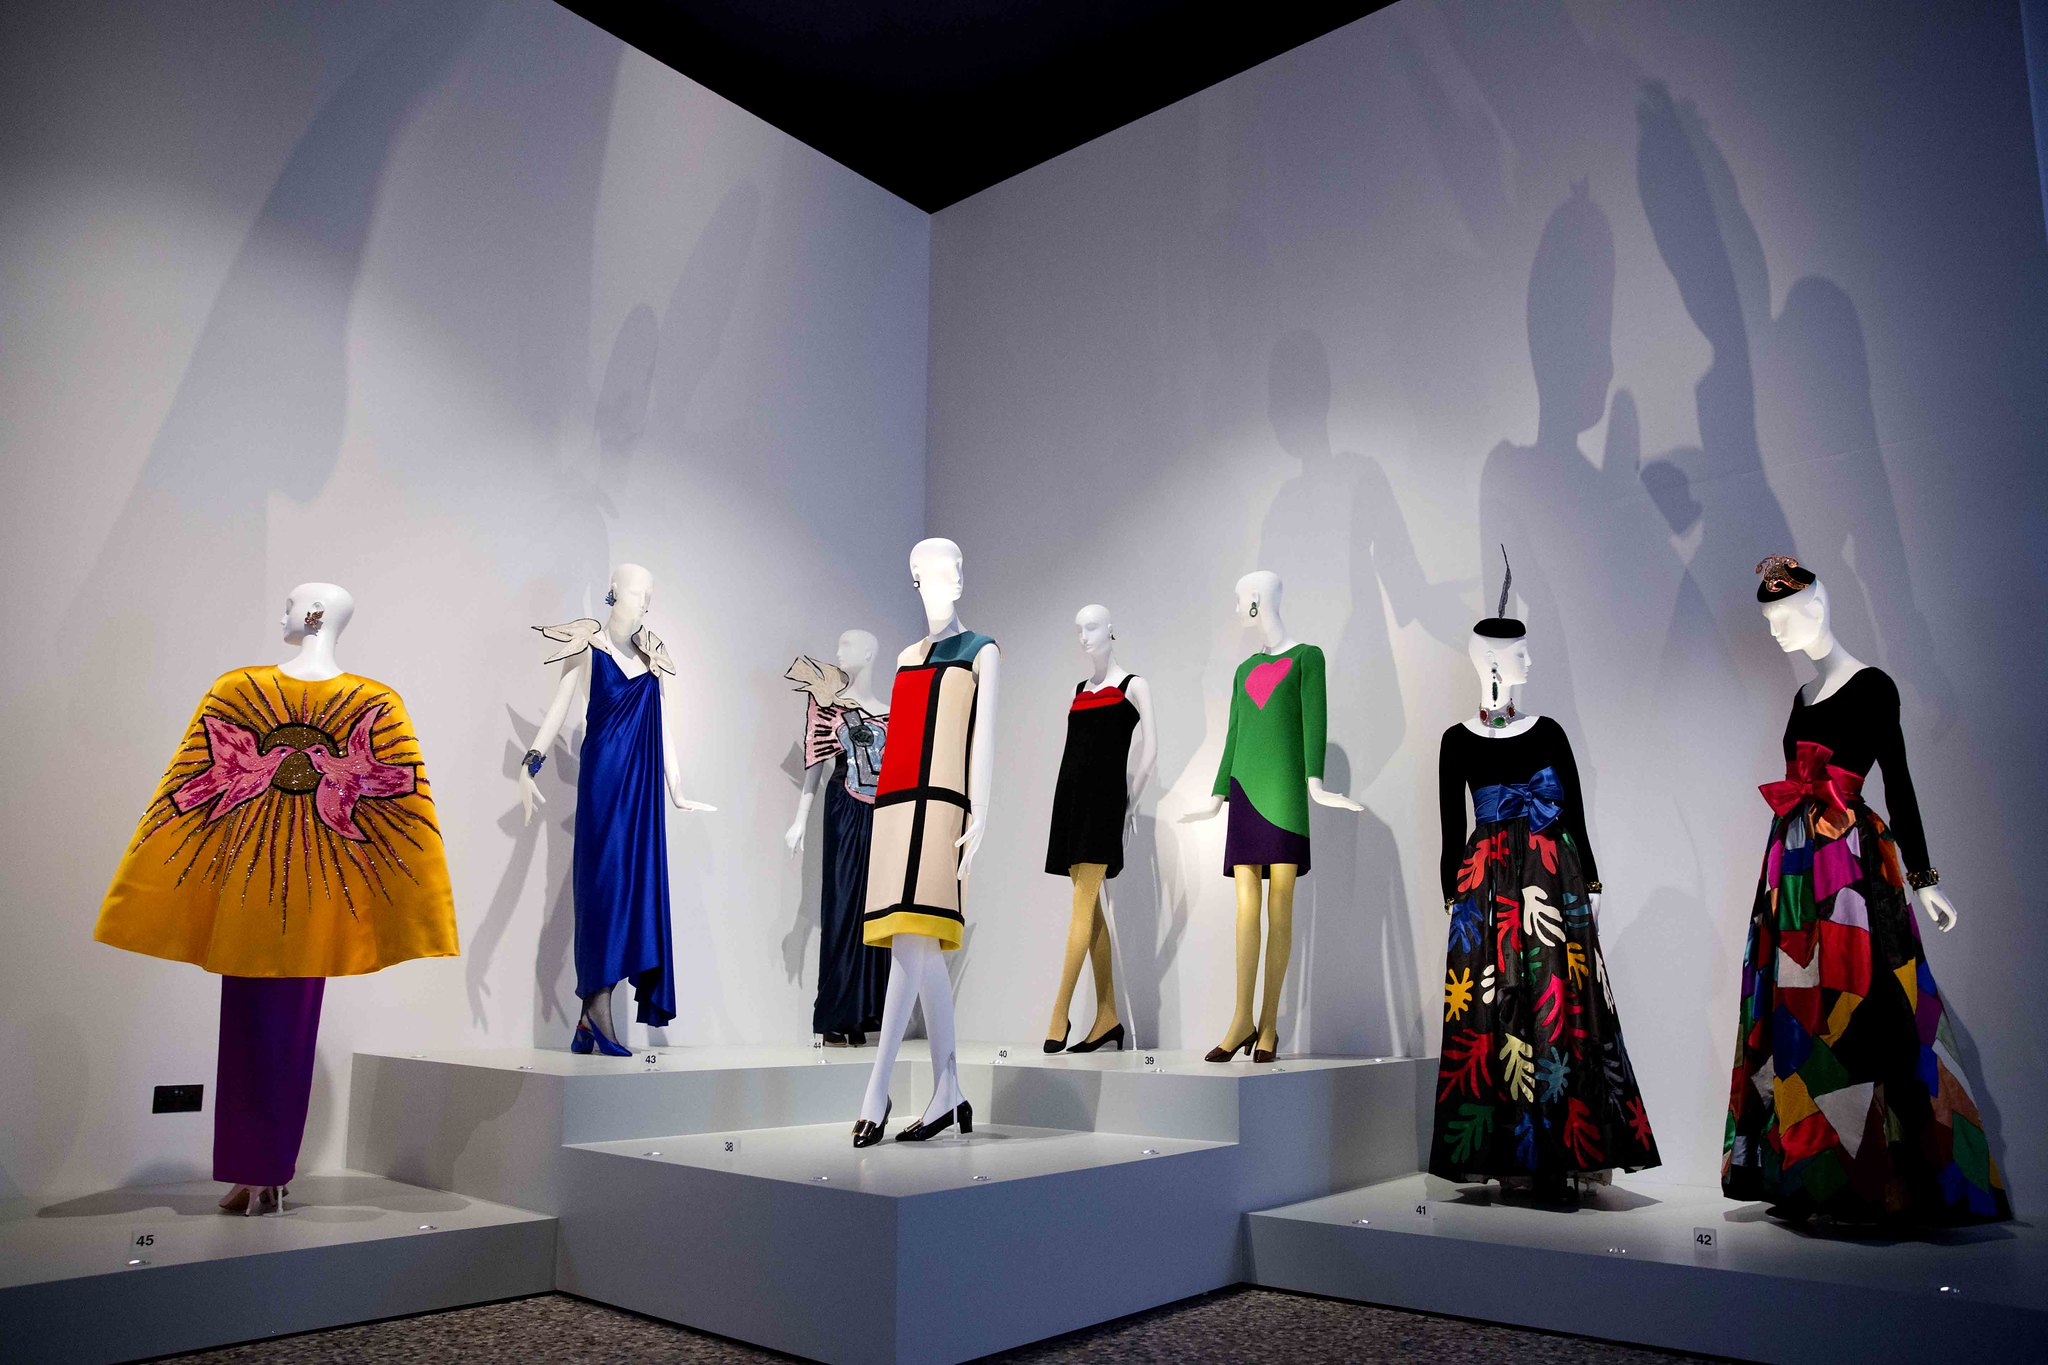 Image of the Yves Saint Laurent exhibition at The Bowes Museum